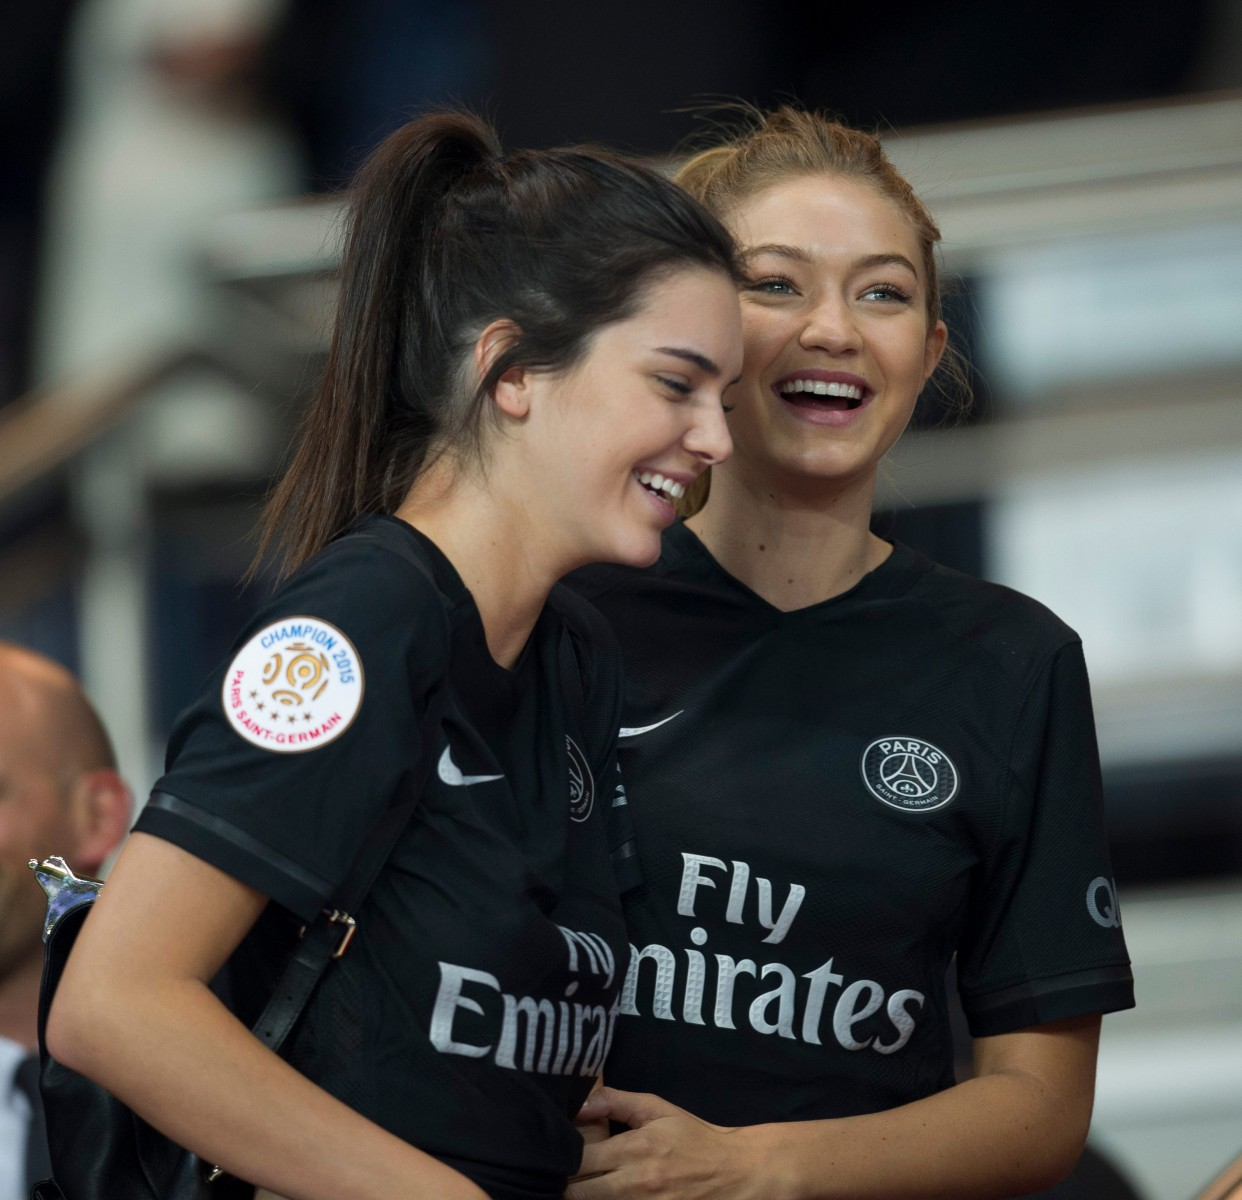 Kendall Jenner and Gigi Hadid often watch PSG when they are in town for Paris Fashion Week